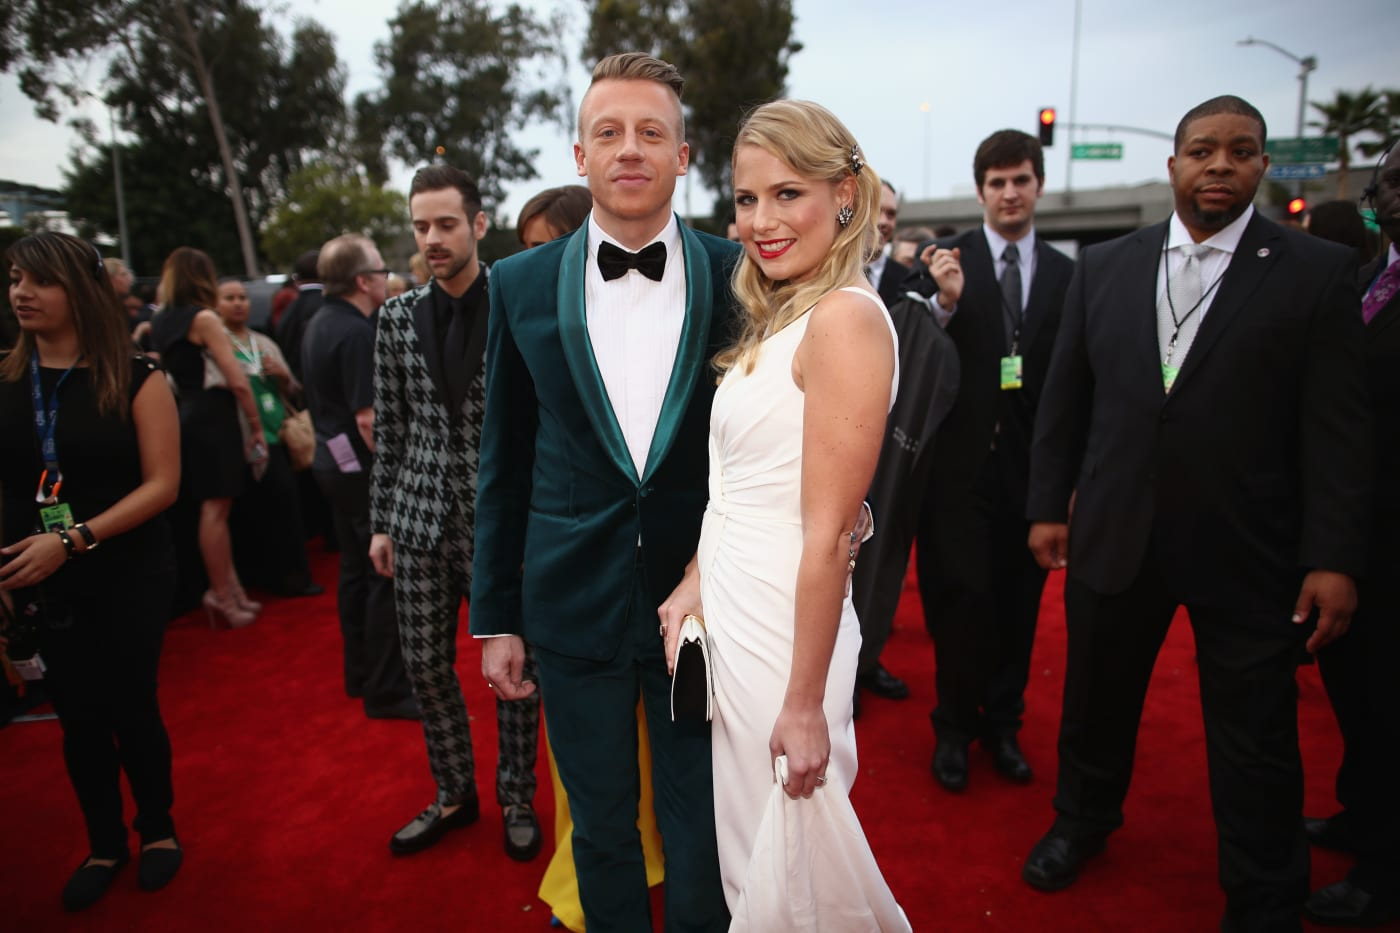 Macklemore and wife at Grammys 2014